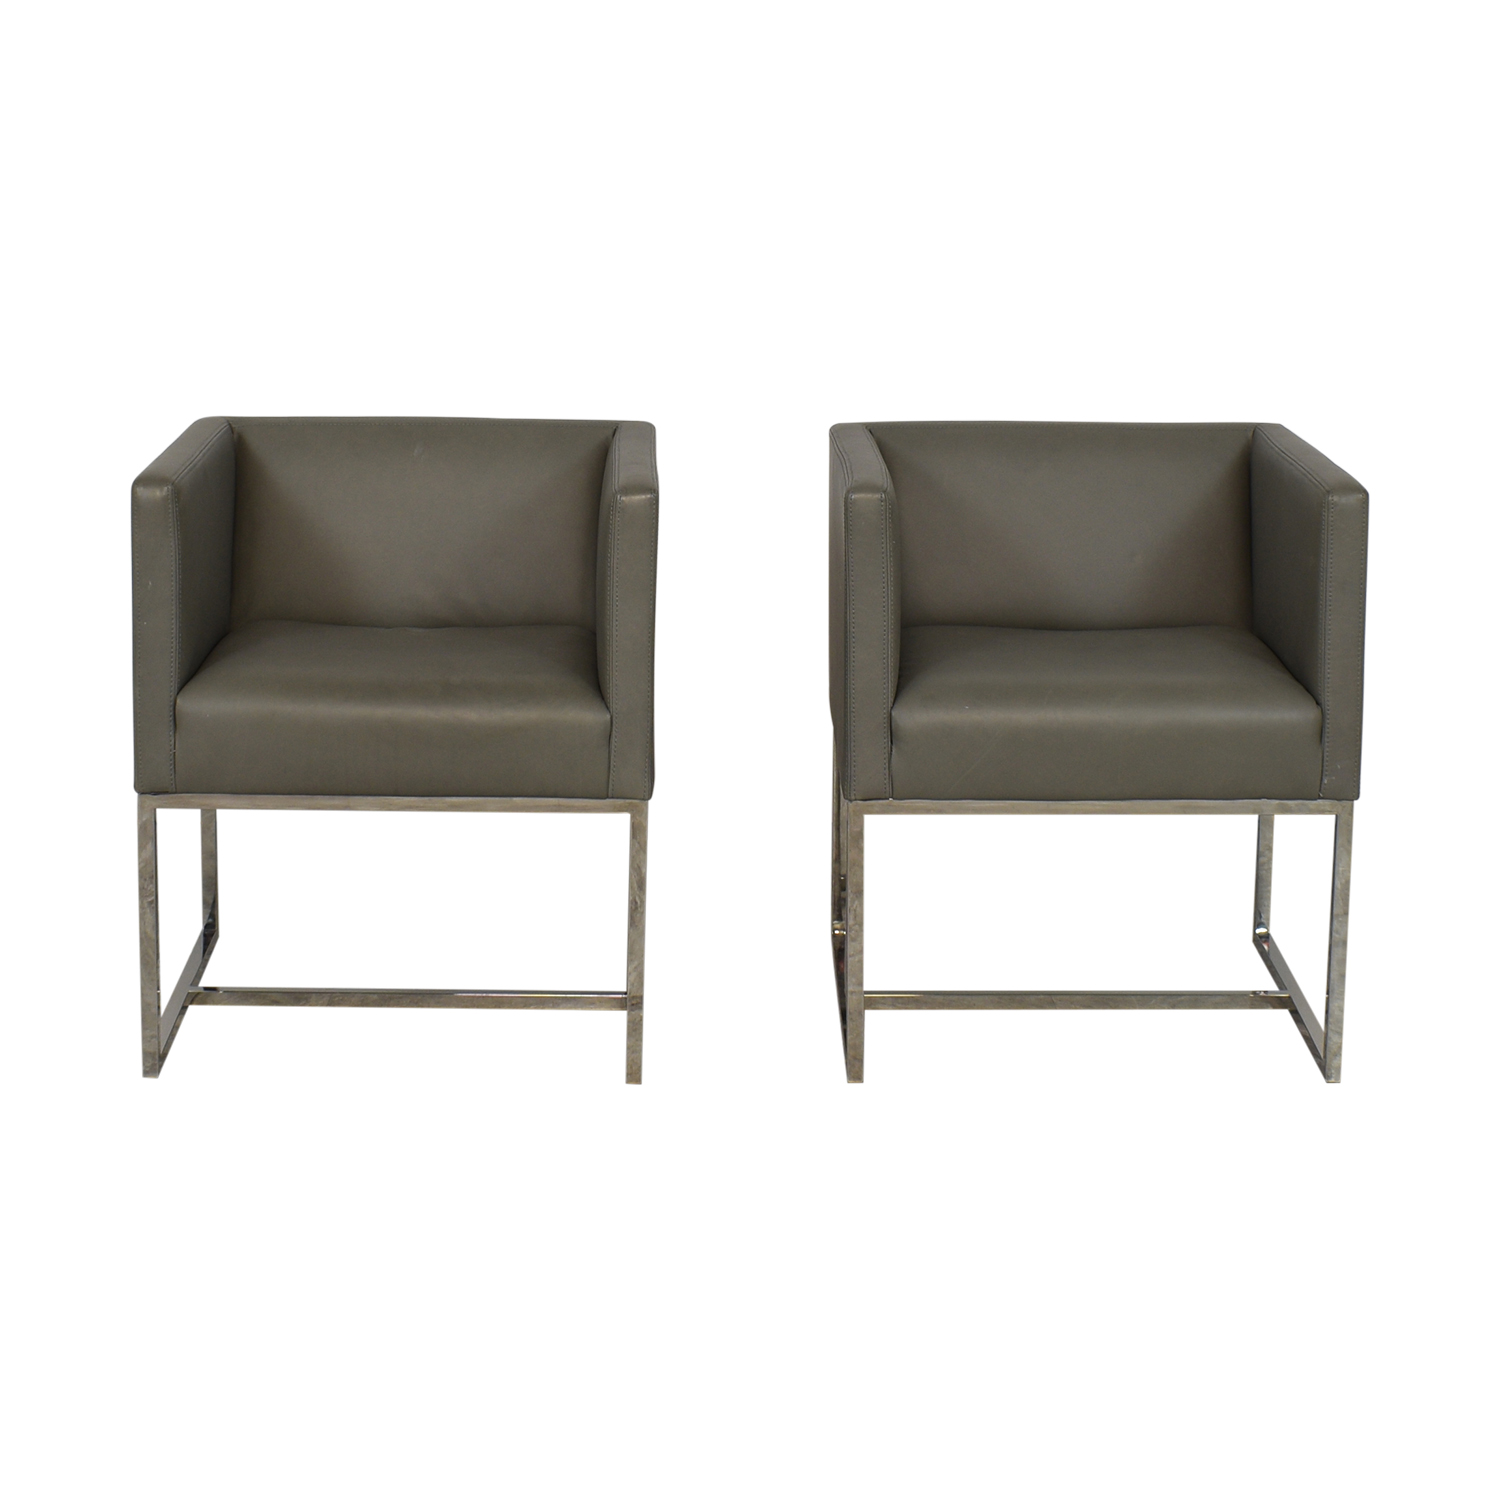 Restoration Hardware Restoration Hardware Emery Shelter Arm Chairs nyc